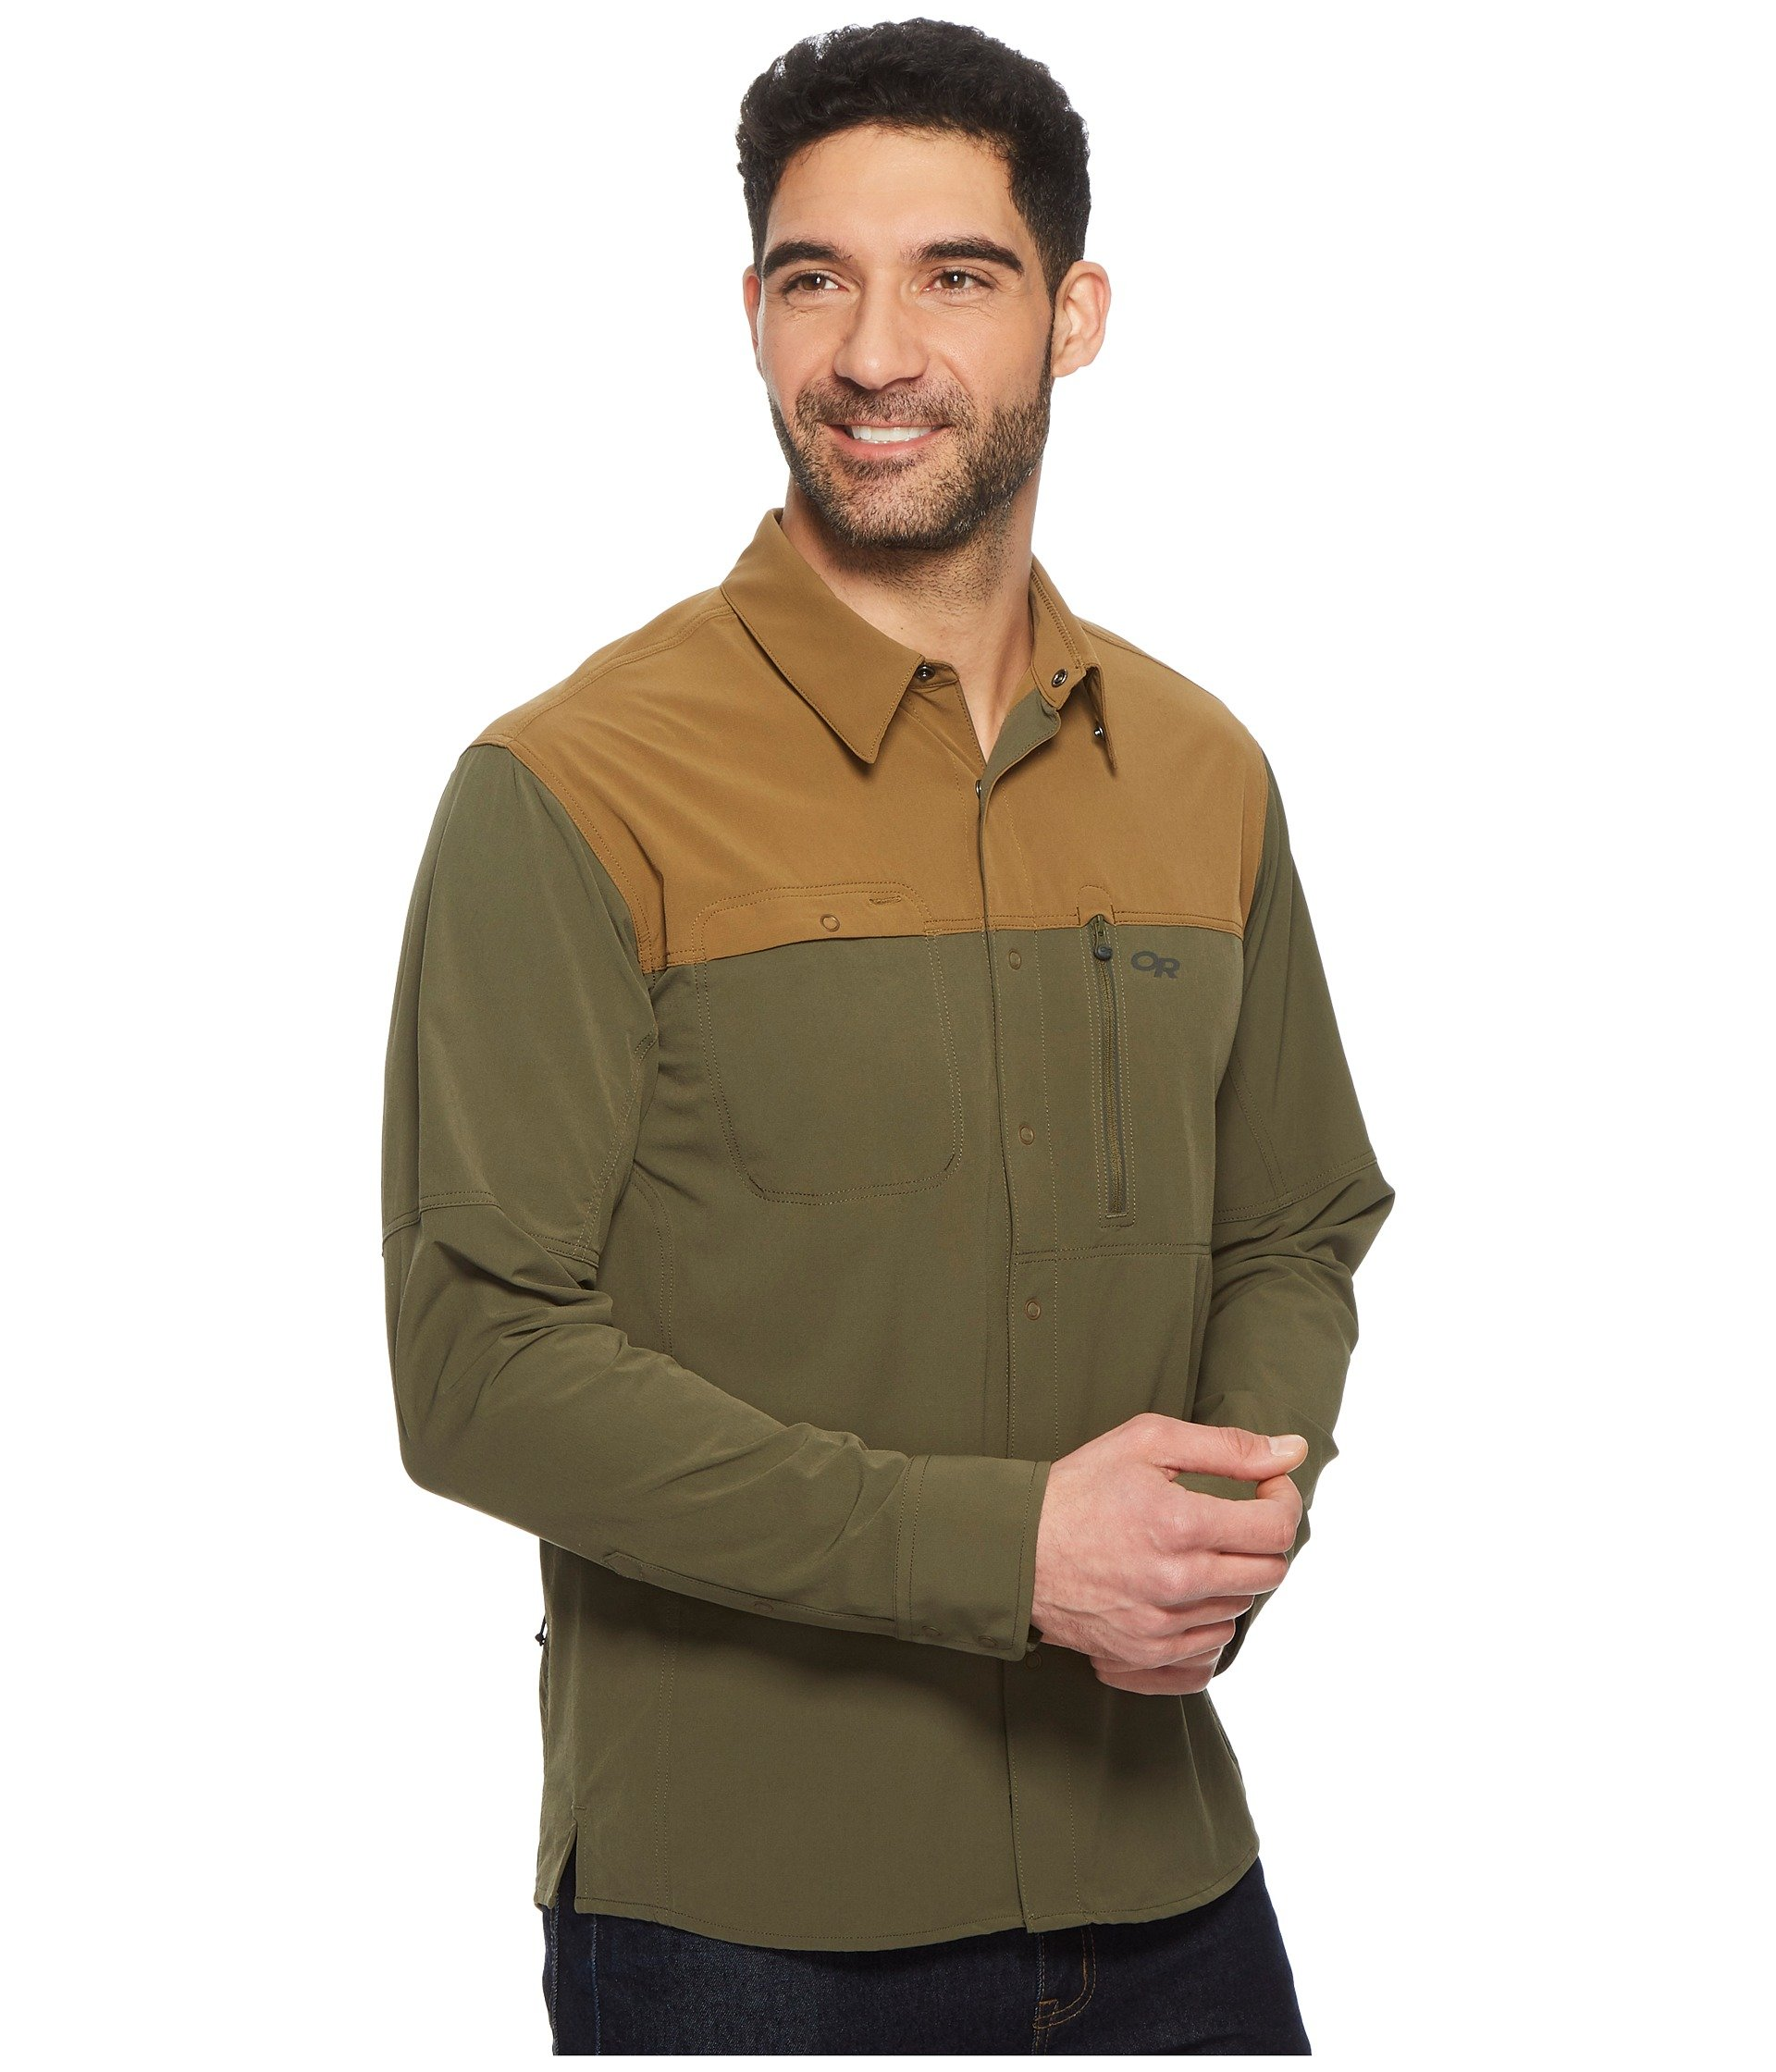 Shirt Outdoor Long Coyote Sleeve fatigue Utility Ferrosi Research wHBcHpq4S